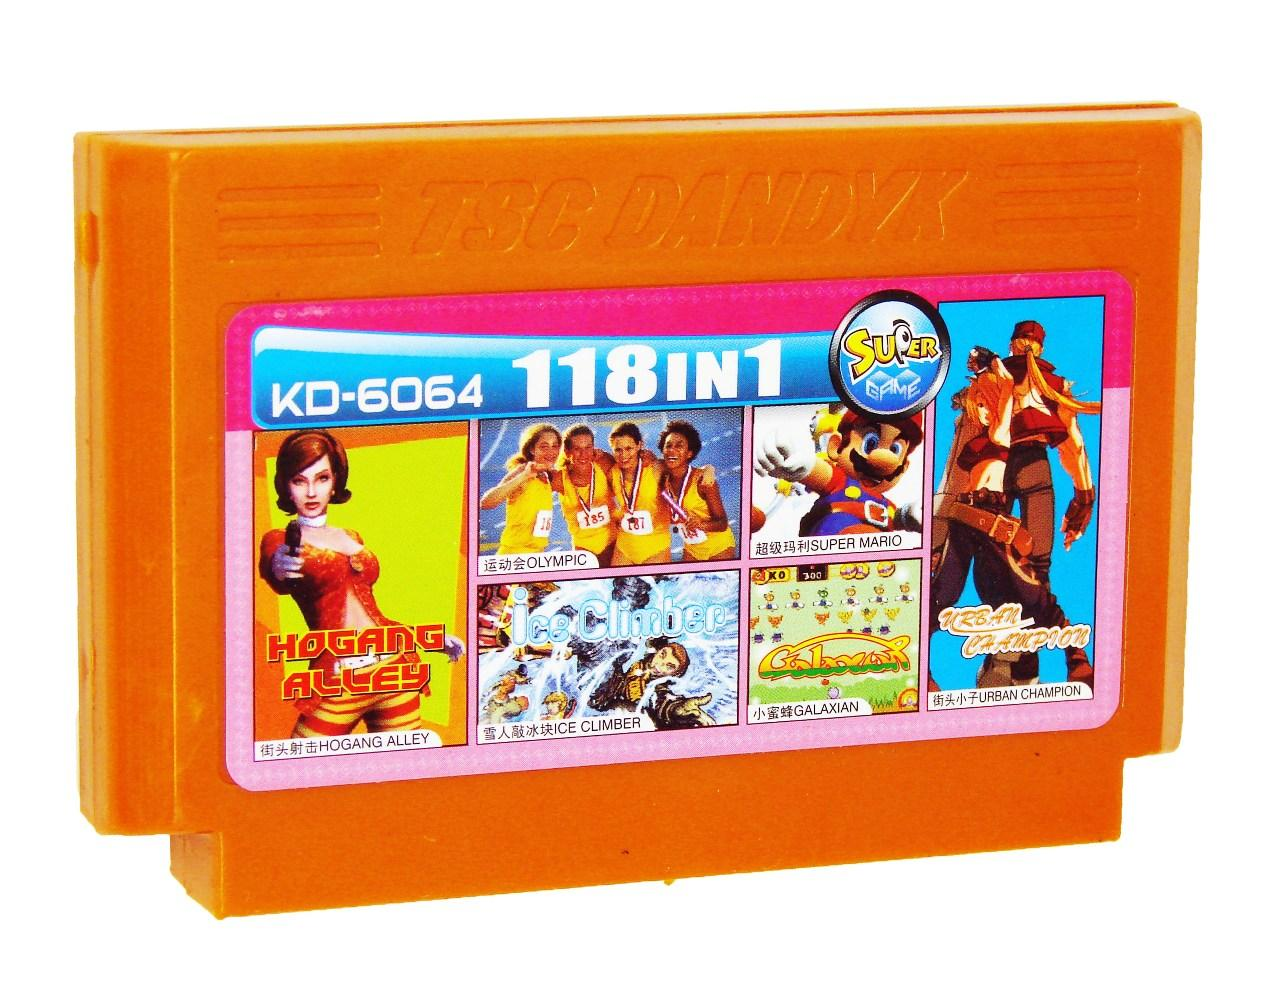 Картридж для Денди KD 6064 118 in 1 (Dendy), Hogang Alley, Olympic, Ice Climber, Super Mario, Galaxian, Urban Champion